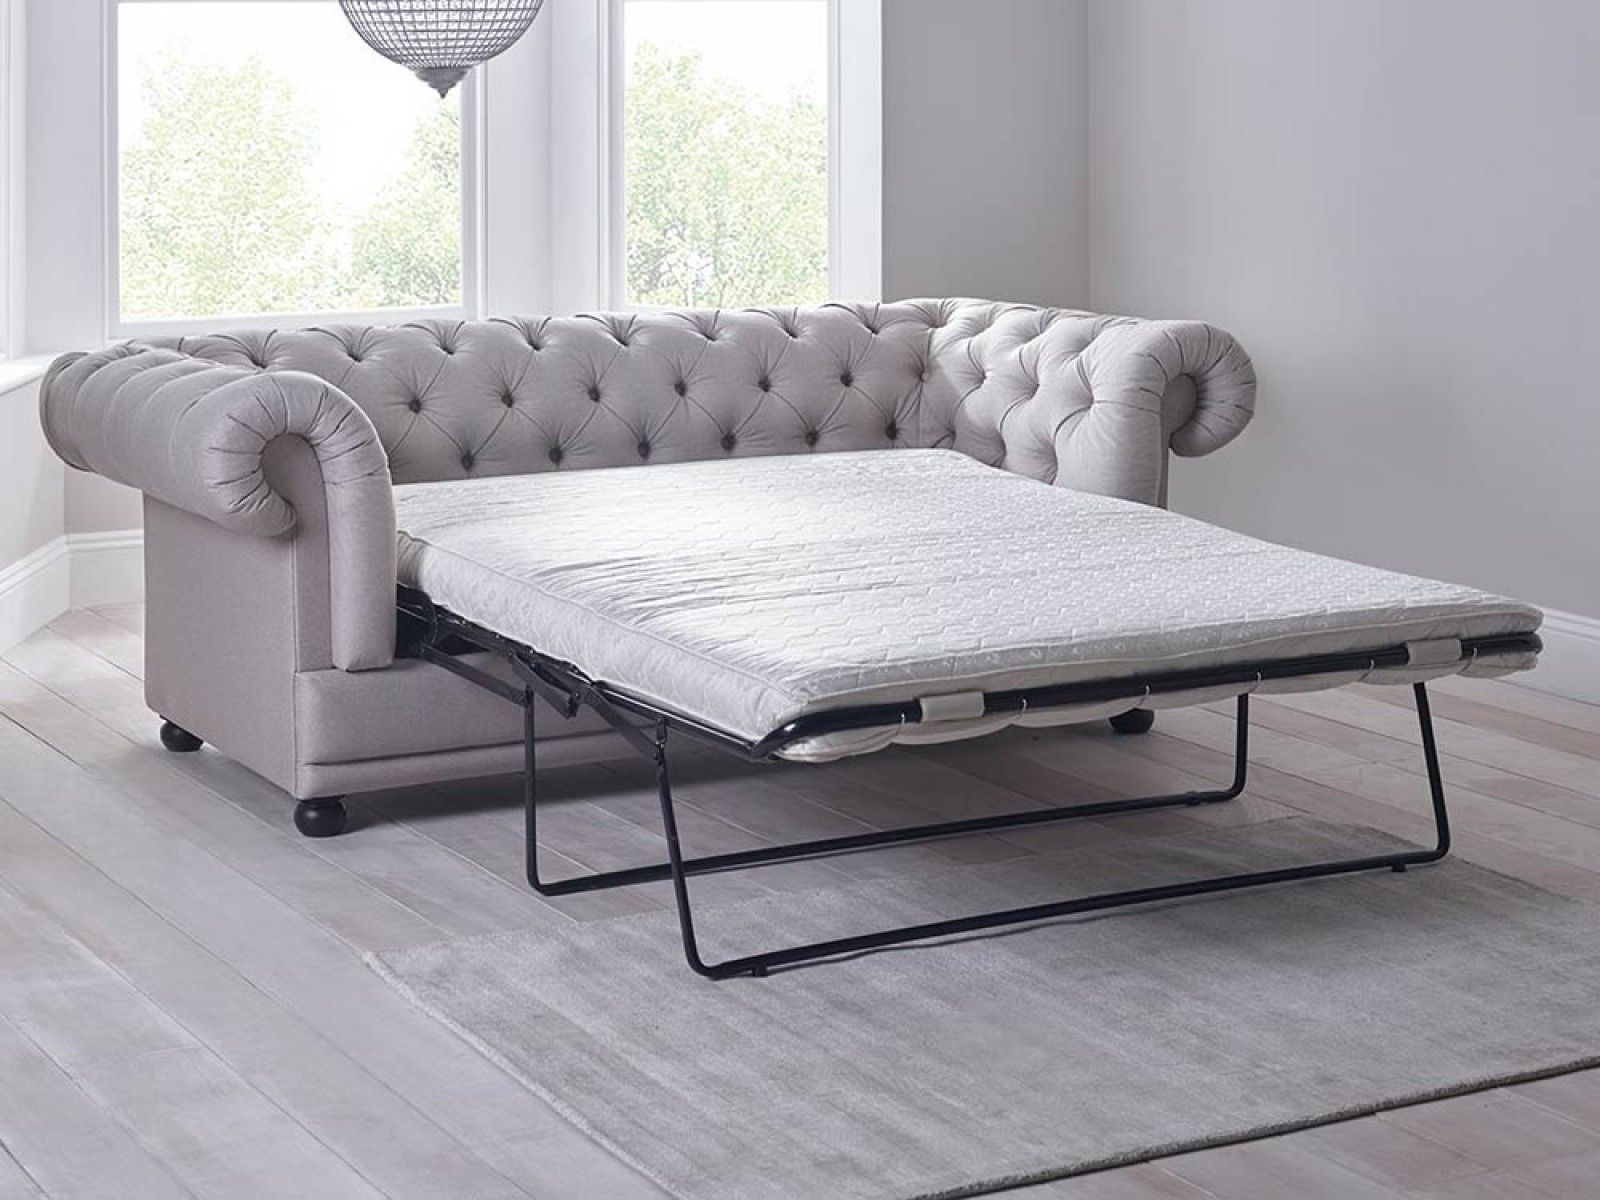 Cara Double Sofa Bed In Grey  A Chesterfield By